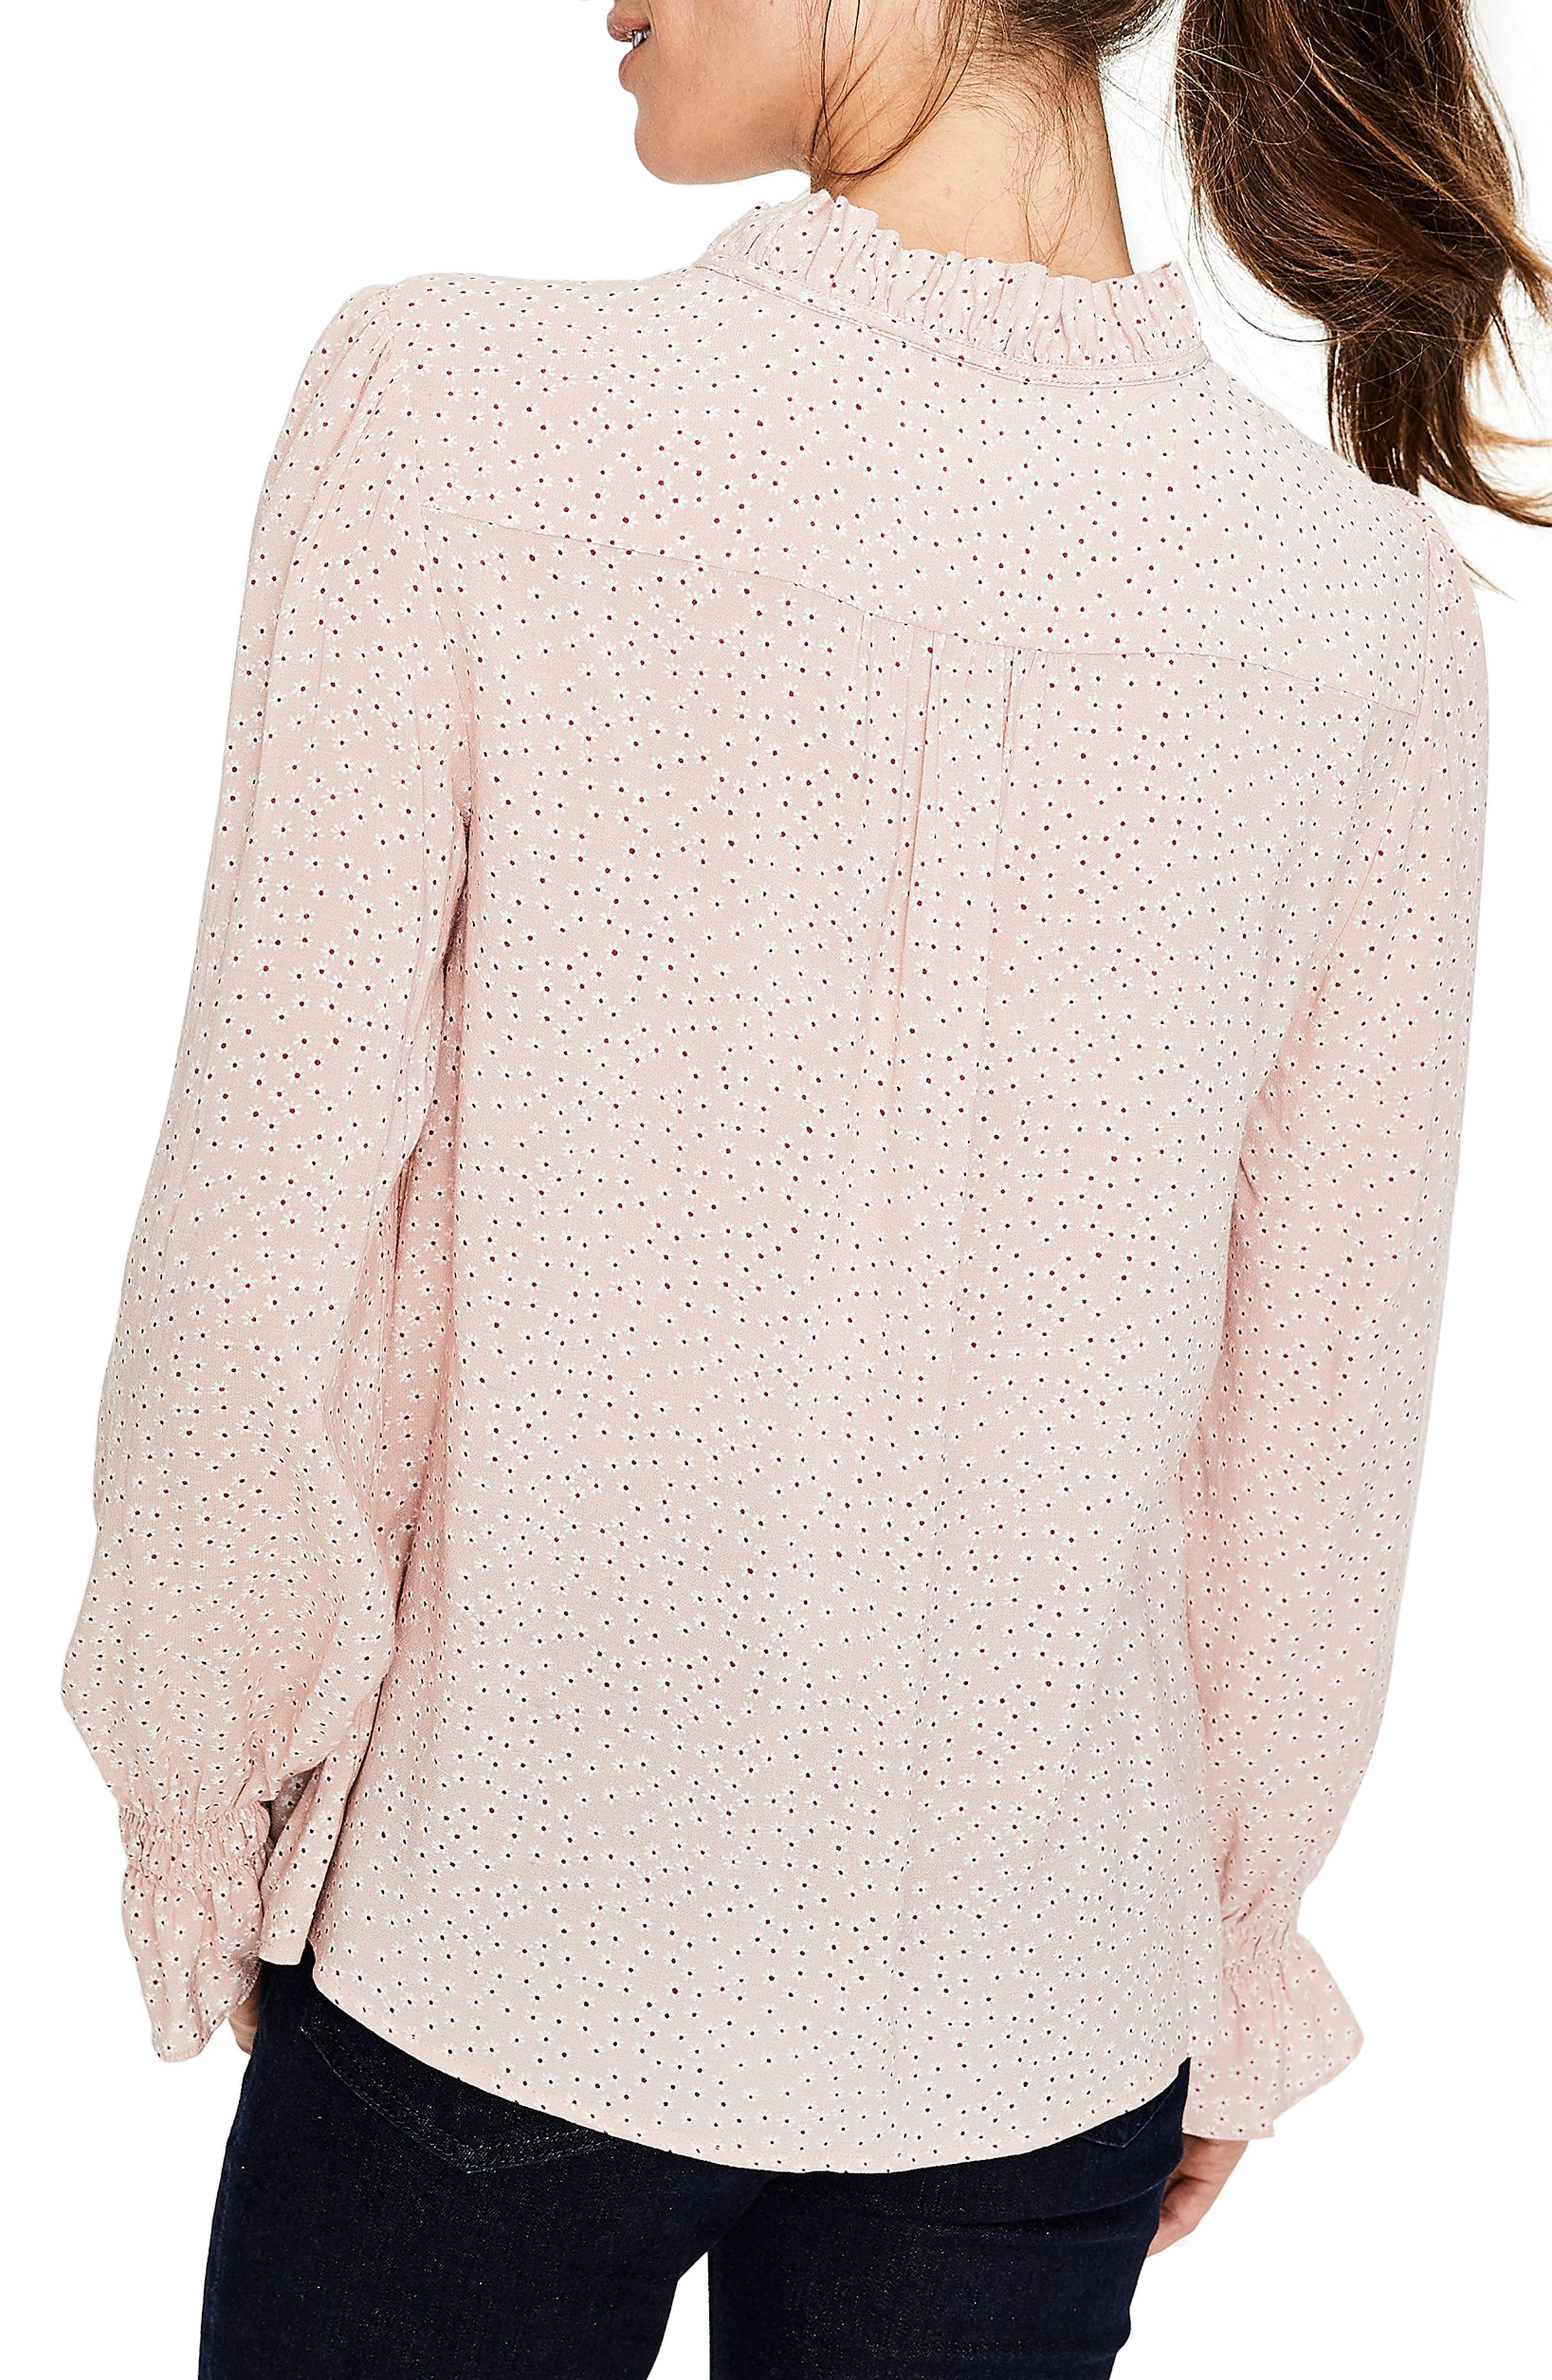 Hotch Potch Ruffled Top,                             Alternate thumbnail 2, color,                             Pink Pearl/ Daisy Sm